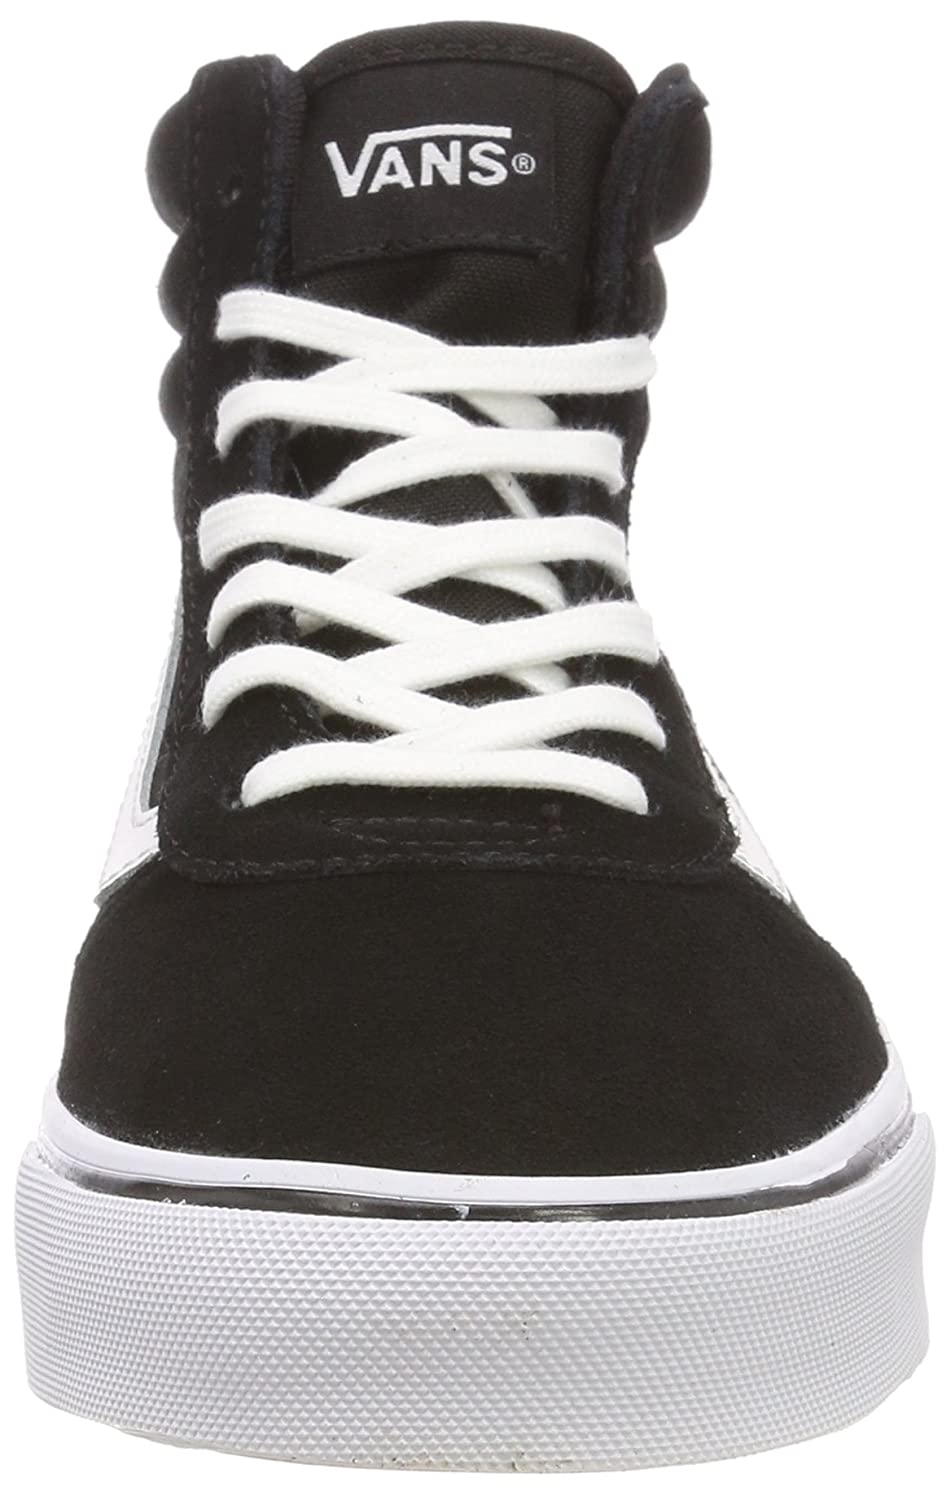 d7caafeee6 Vans Women s Maddie Hi Suede Canvas Top Trainers  Amazon.co.uk  Shoes   Bags